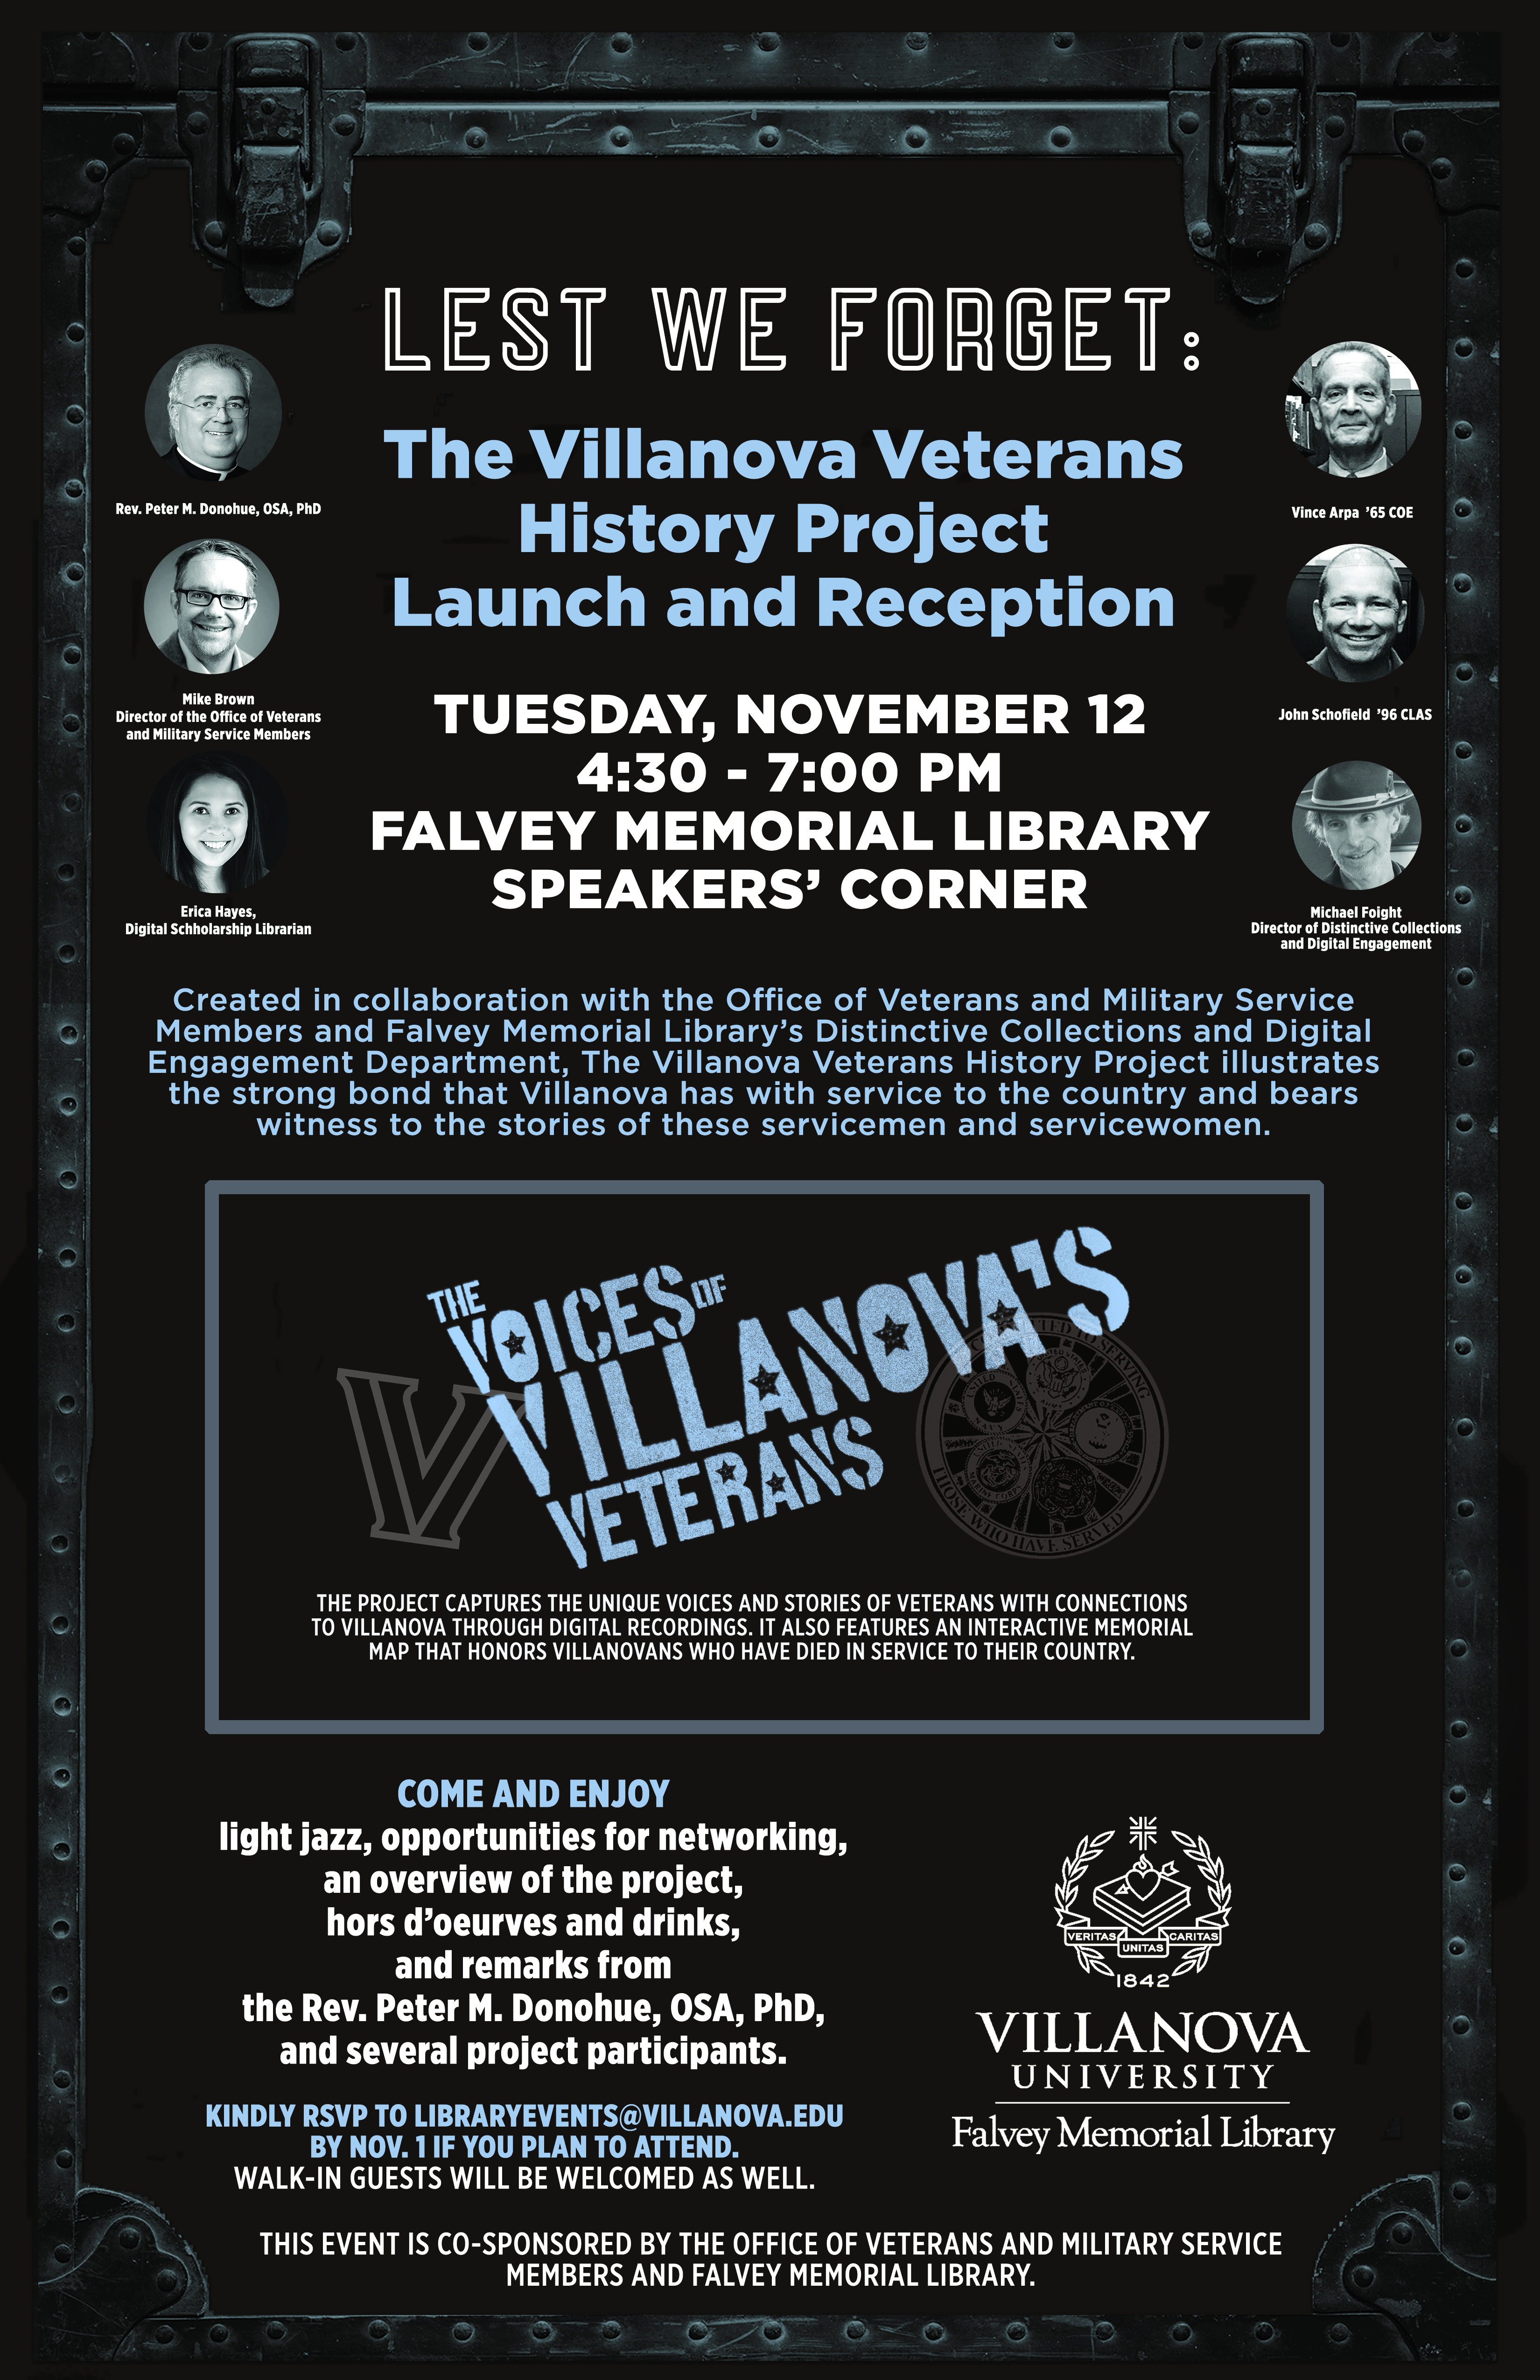 Villanova's Veterans Voices event poster